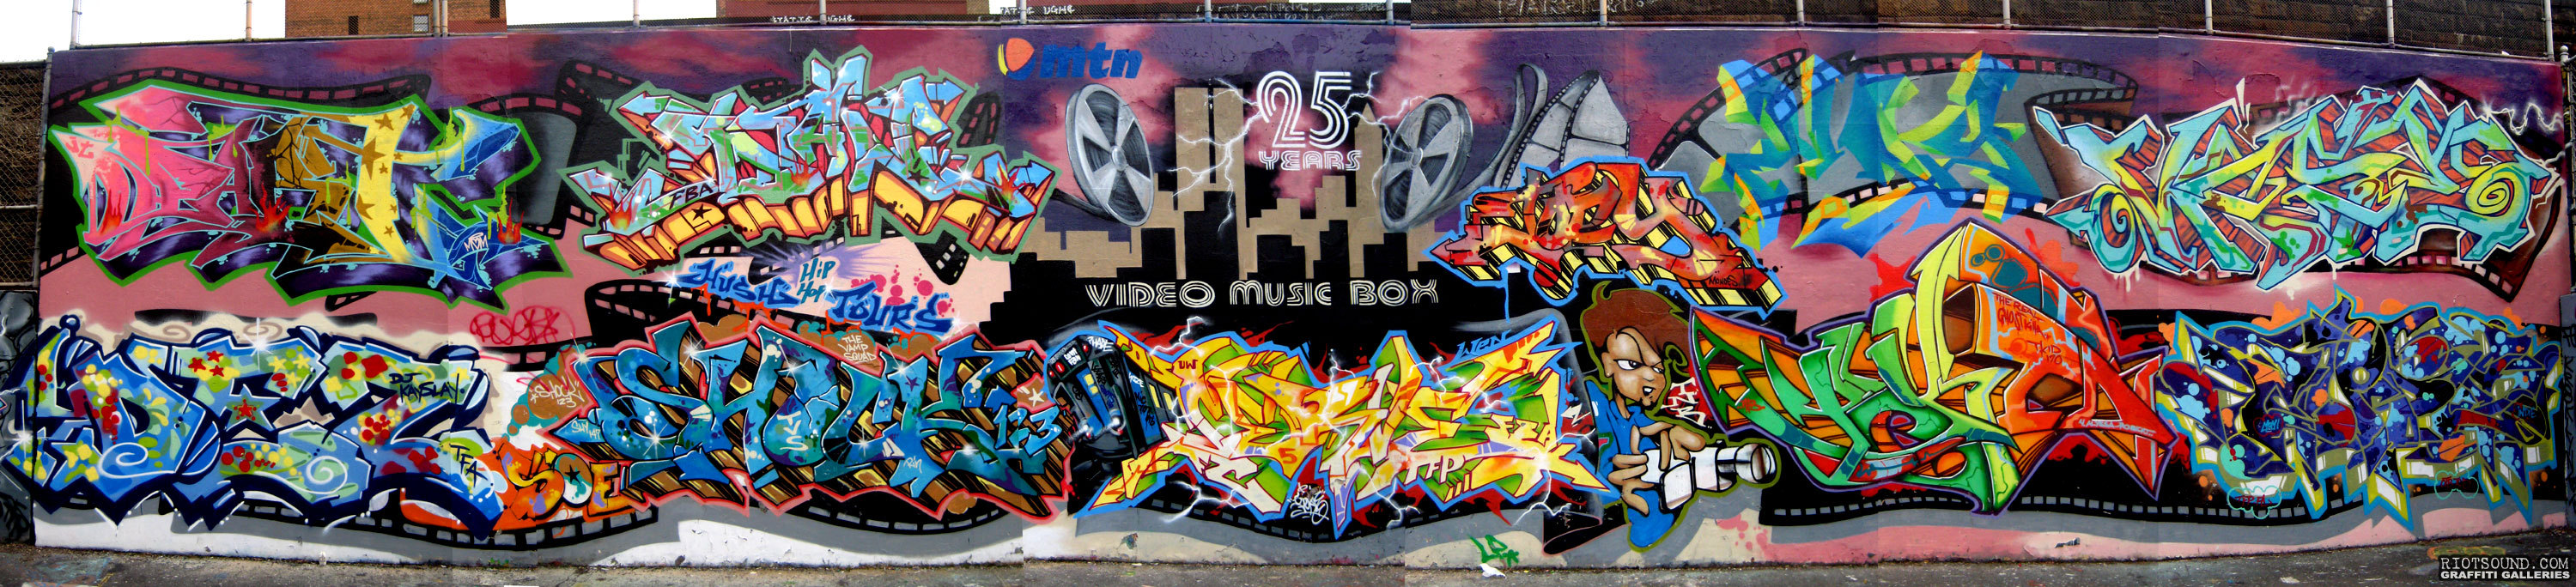 DEZ PART1 SHOCK123 TKID Mural